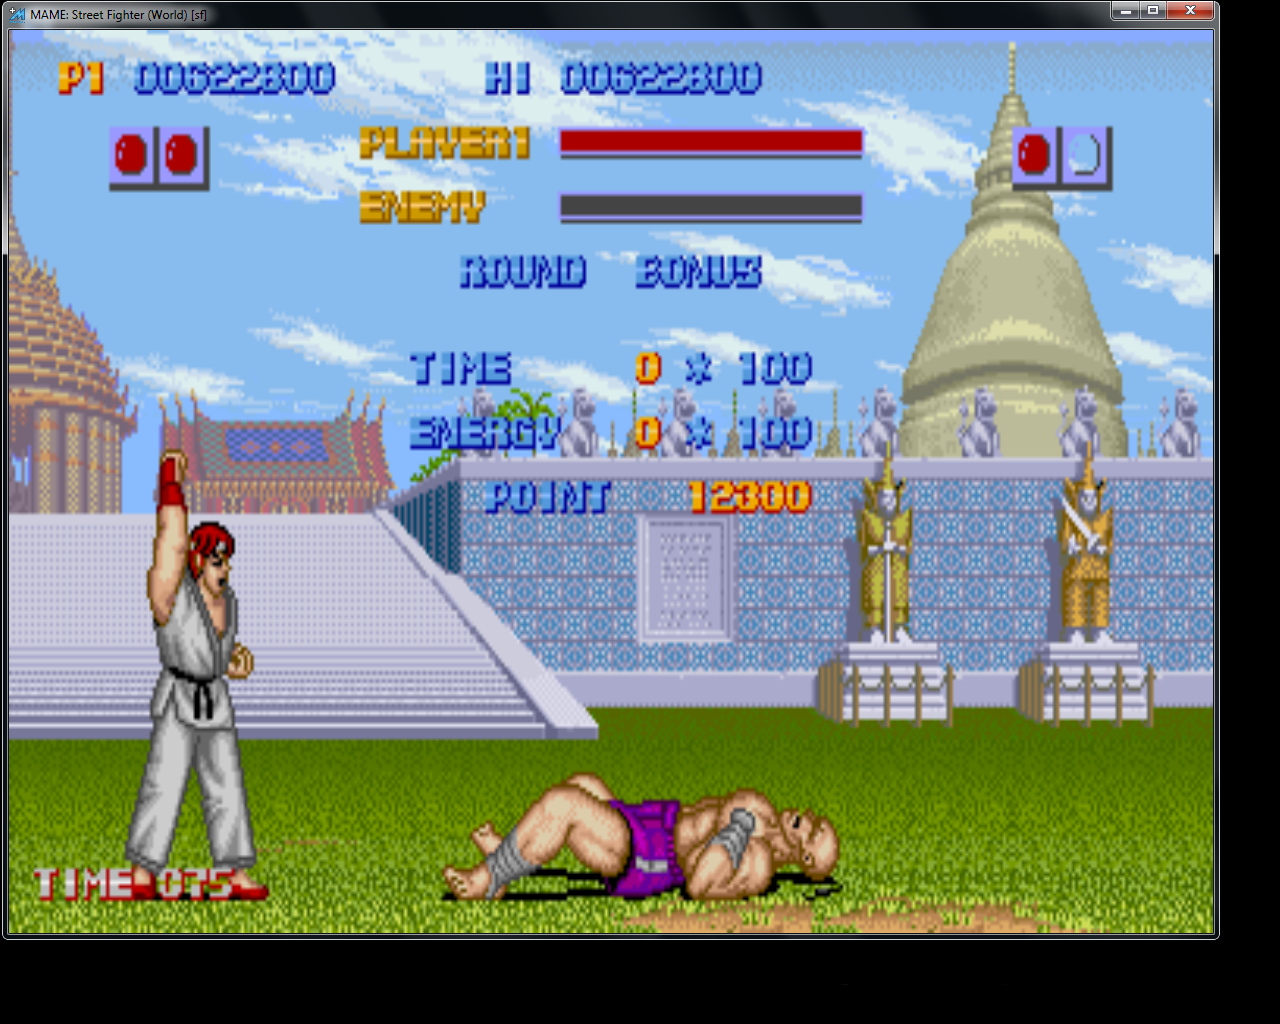 bubufubu: Street Fighter [sf] (Arcade Emulated / M.A.M.E.) 622,800 points on 2015-07-13 12:19:54